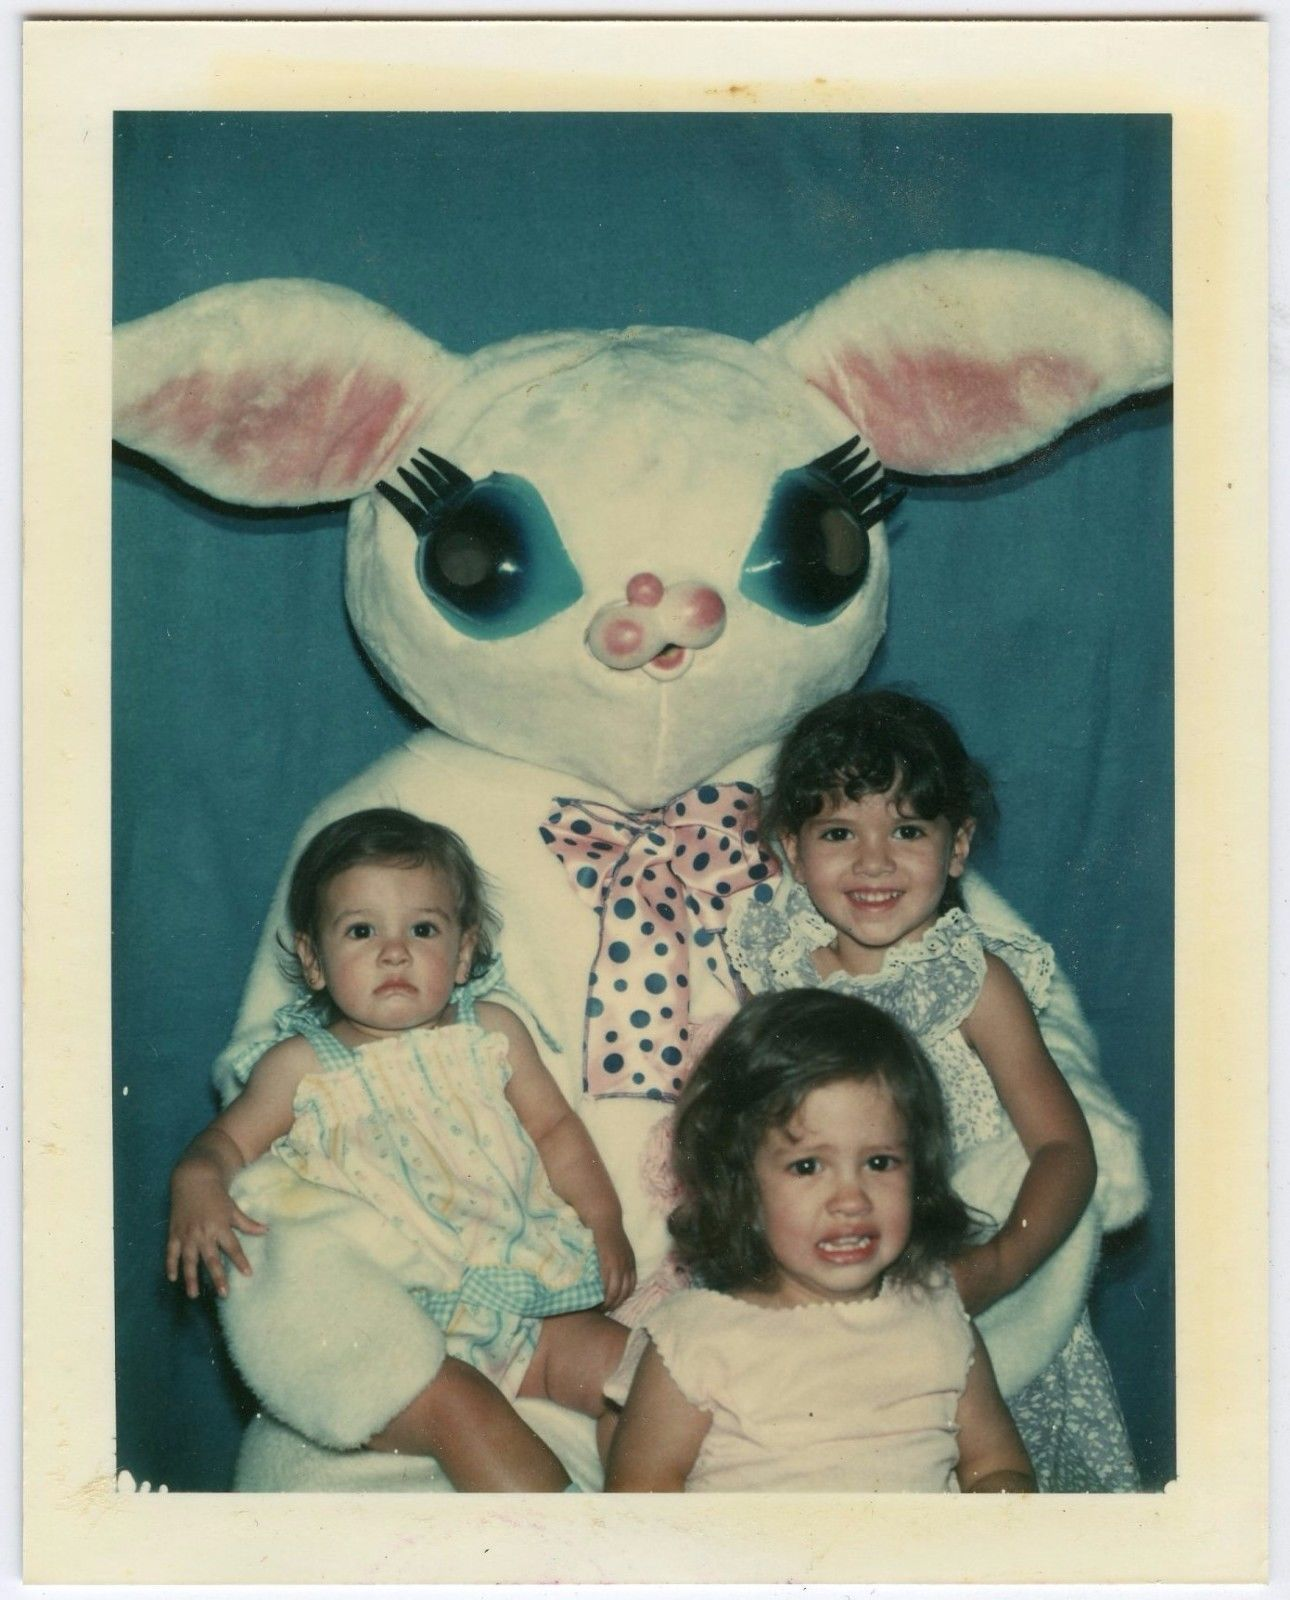 Crying Laughing Girls Visiting Creepy Easter Bunny 2 Vtg 70s Polaroid Photos DK